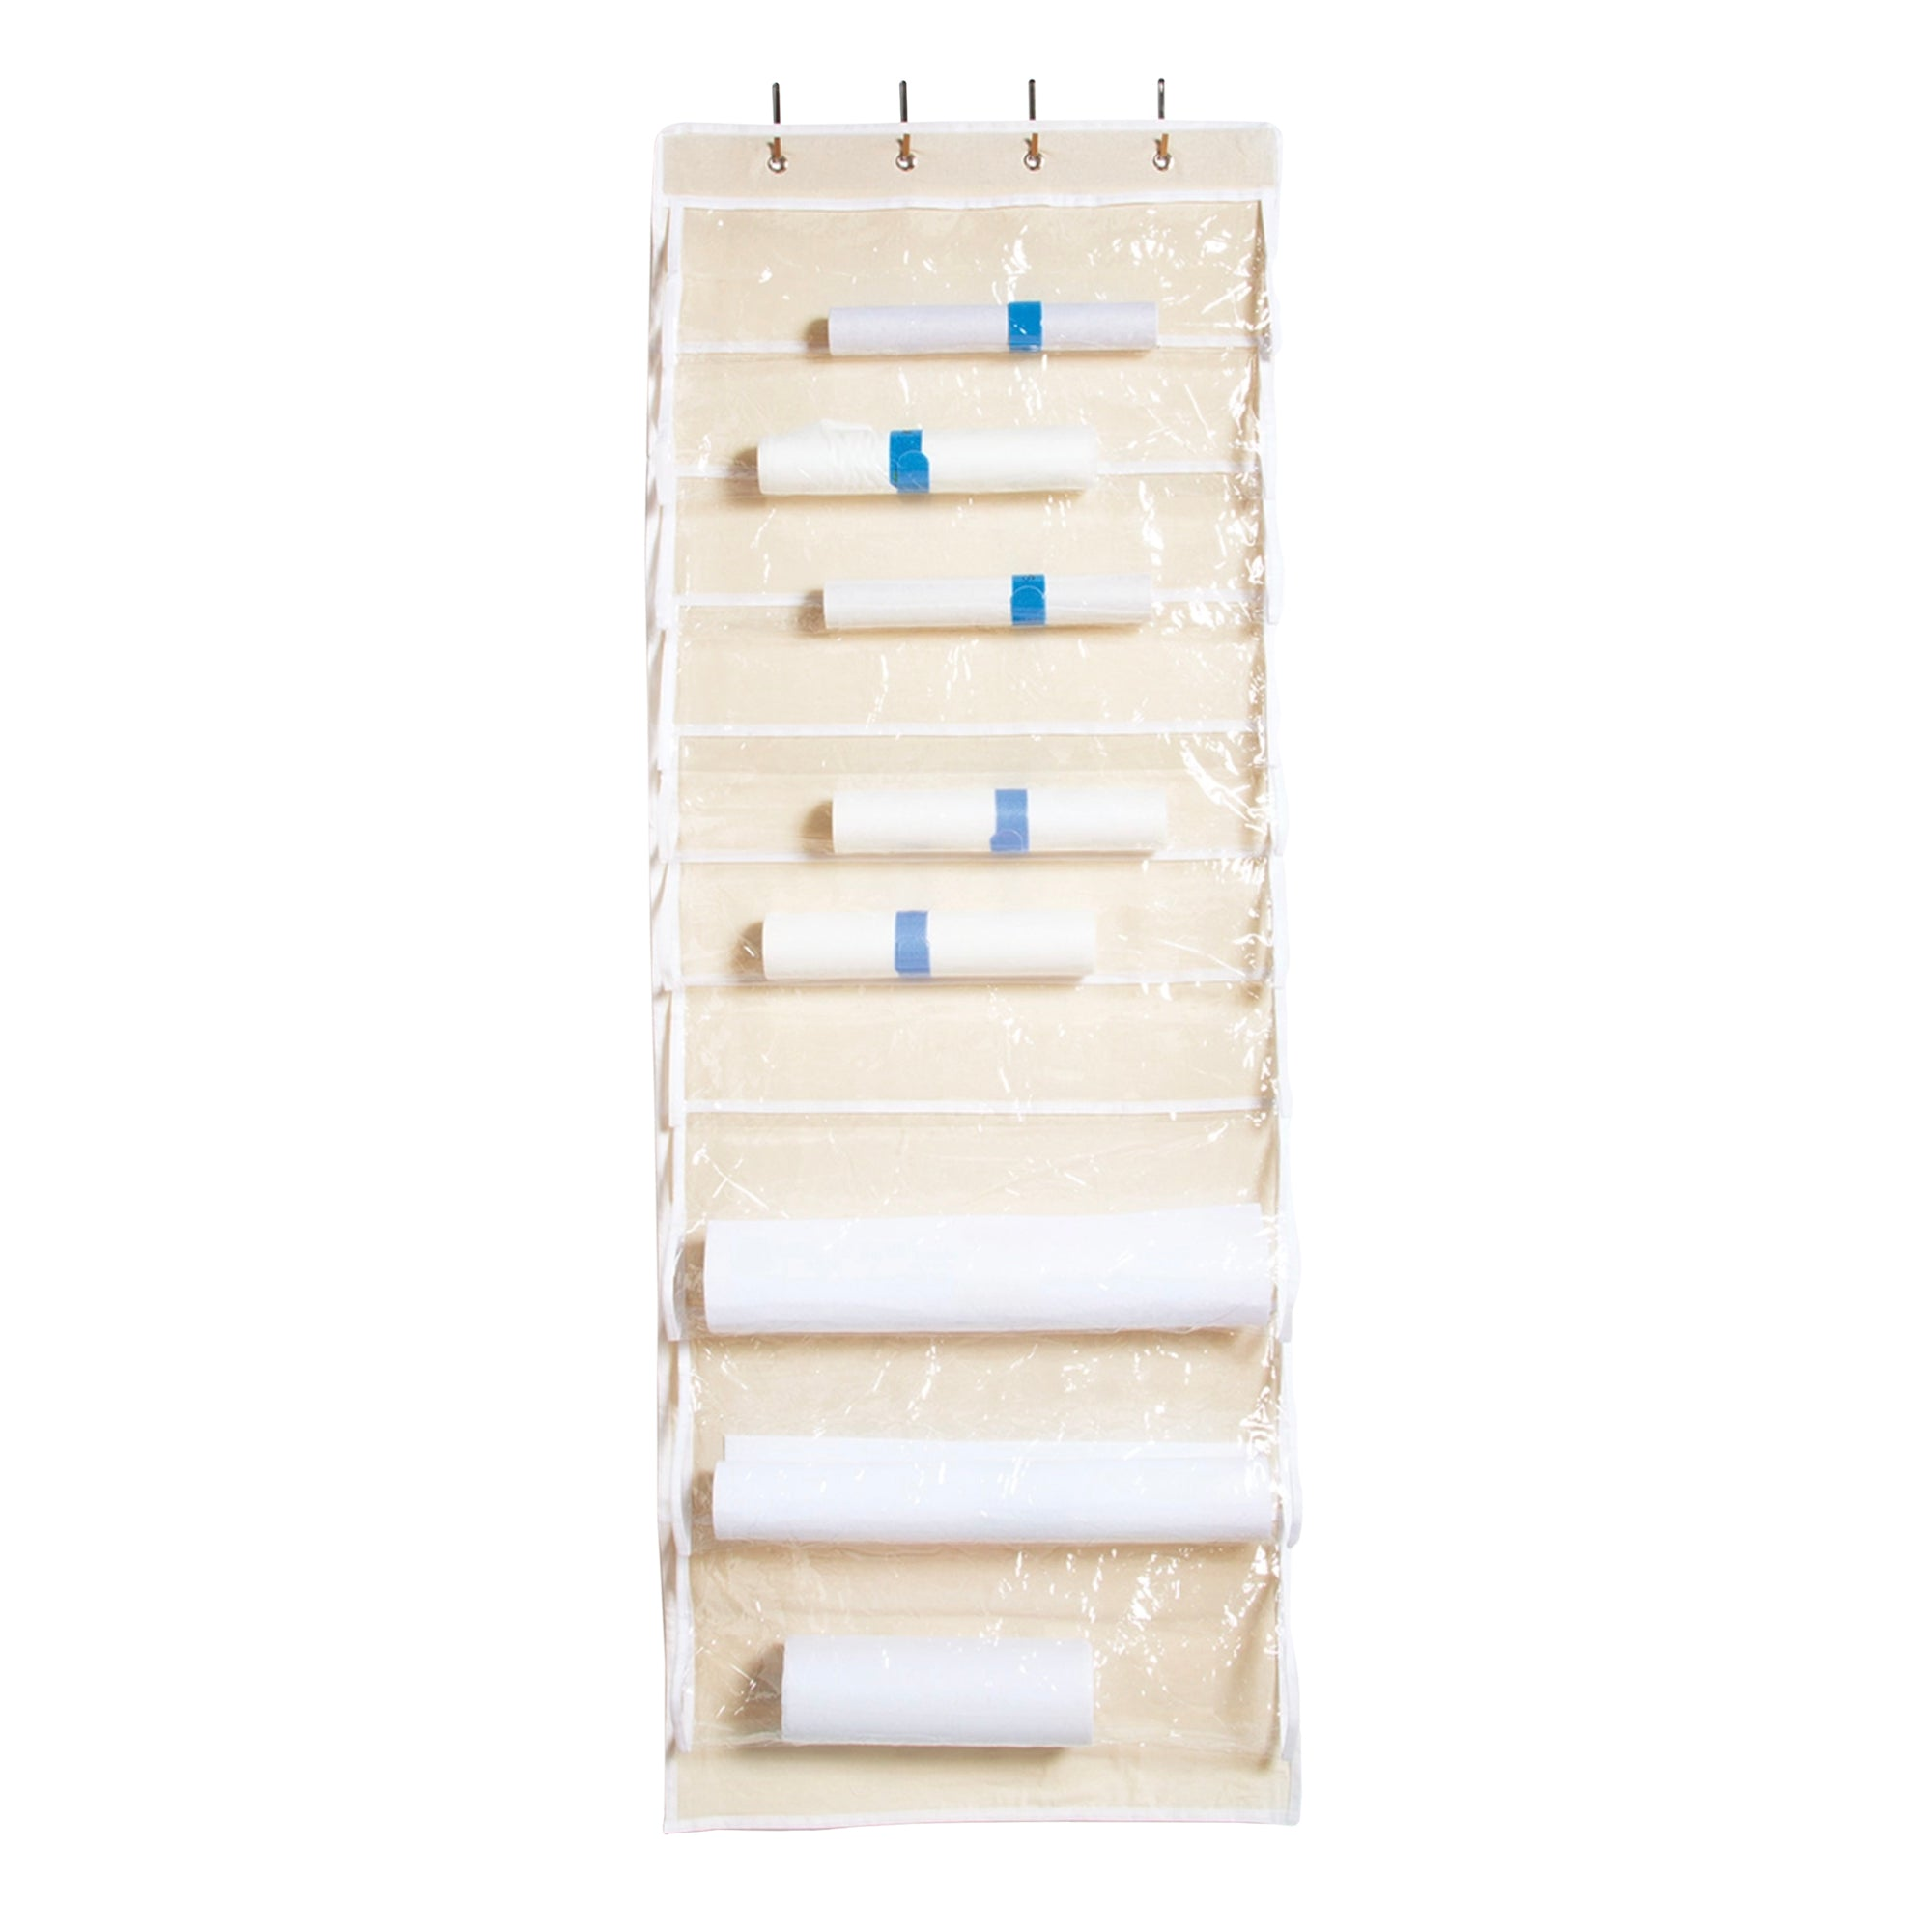 Over-the-Door Stabilizer Organizer